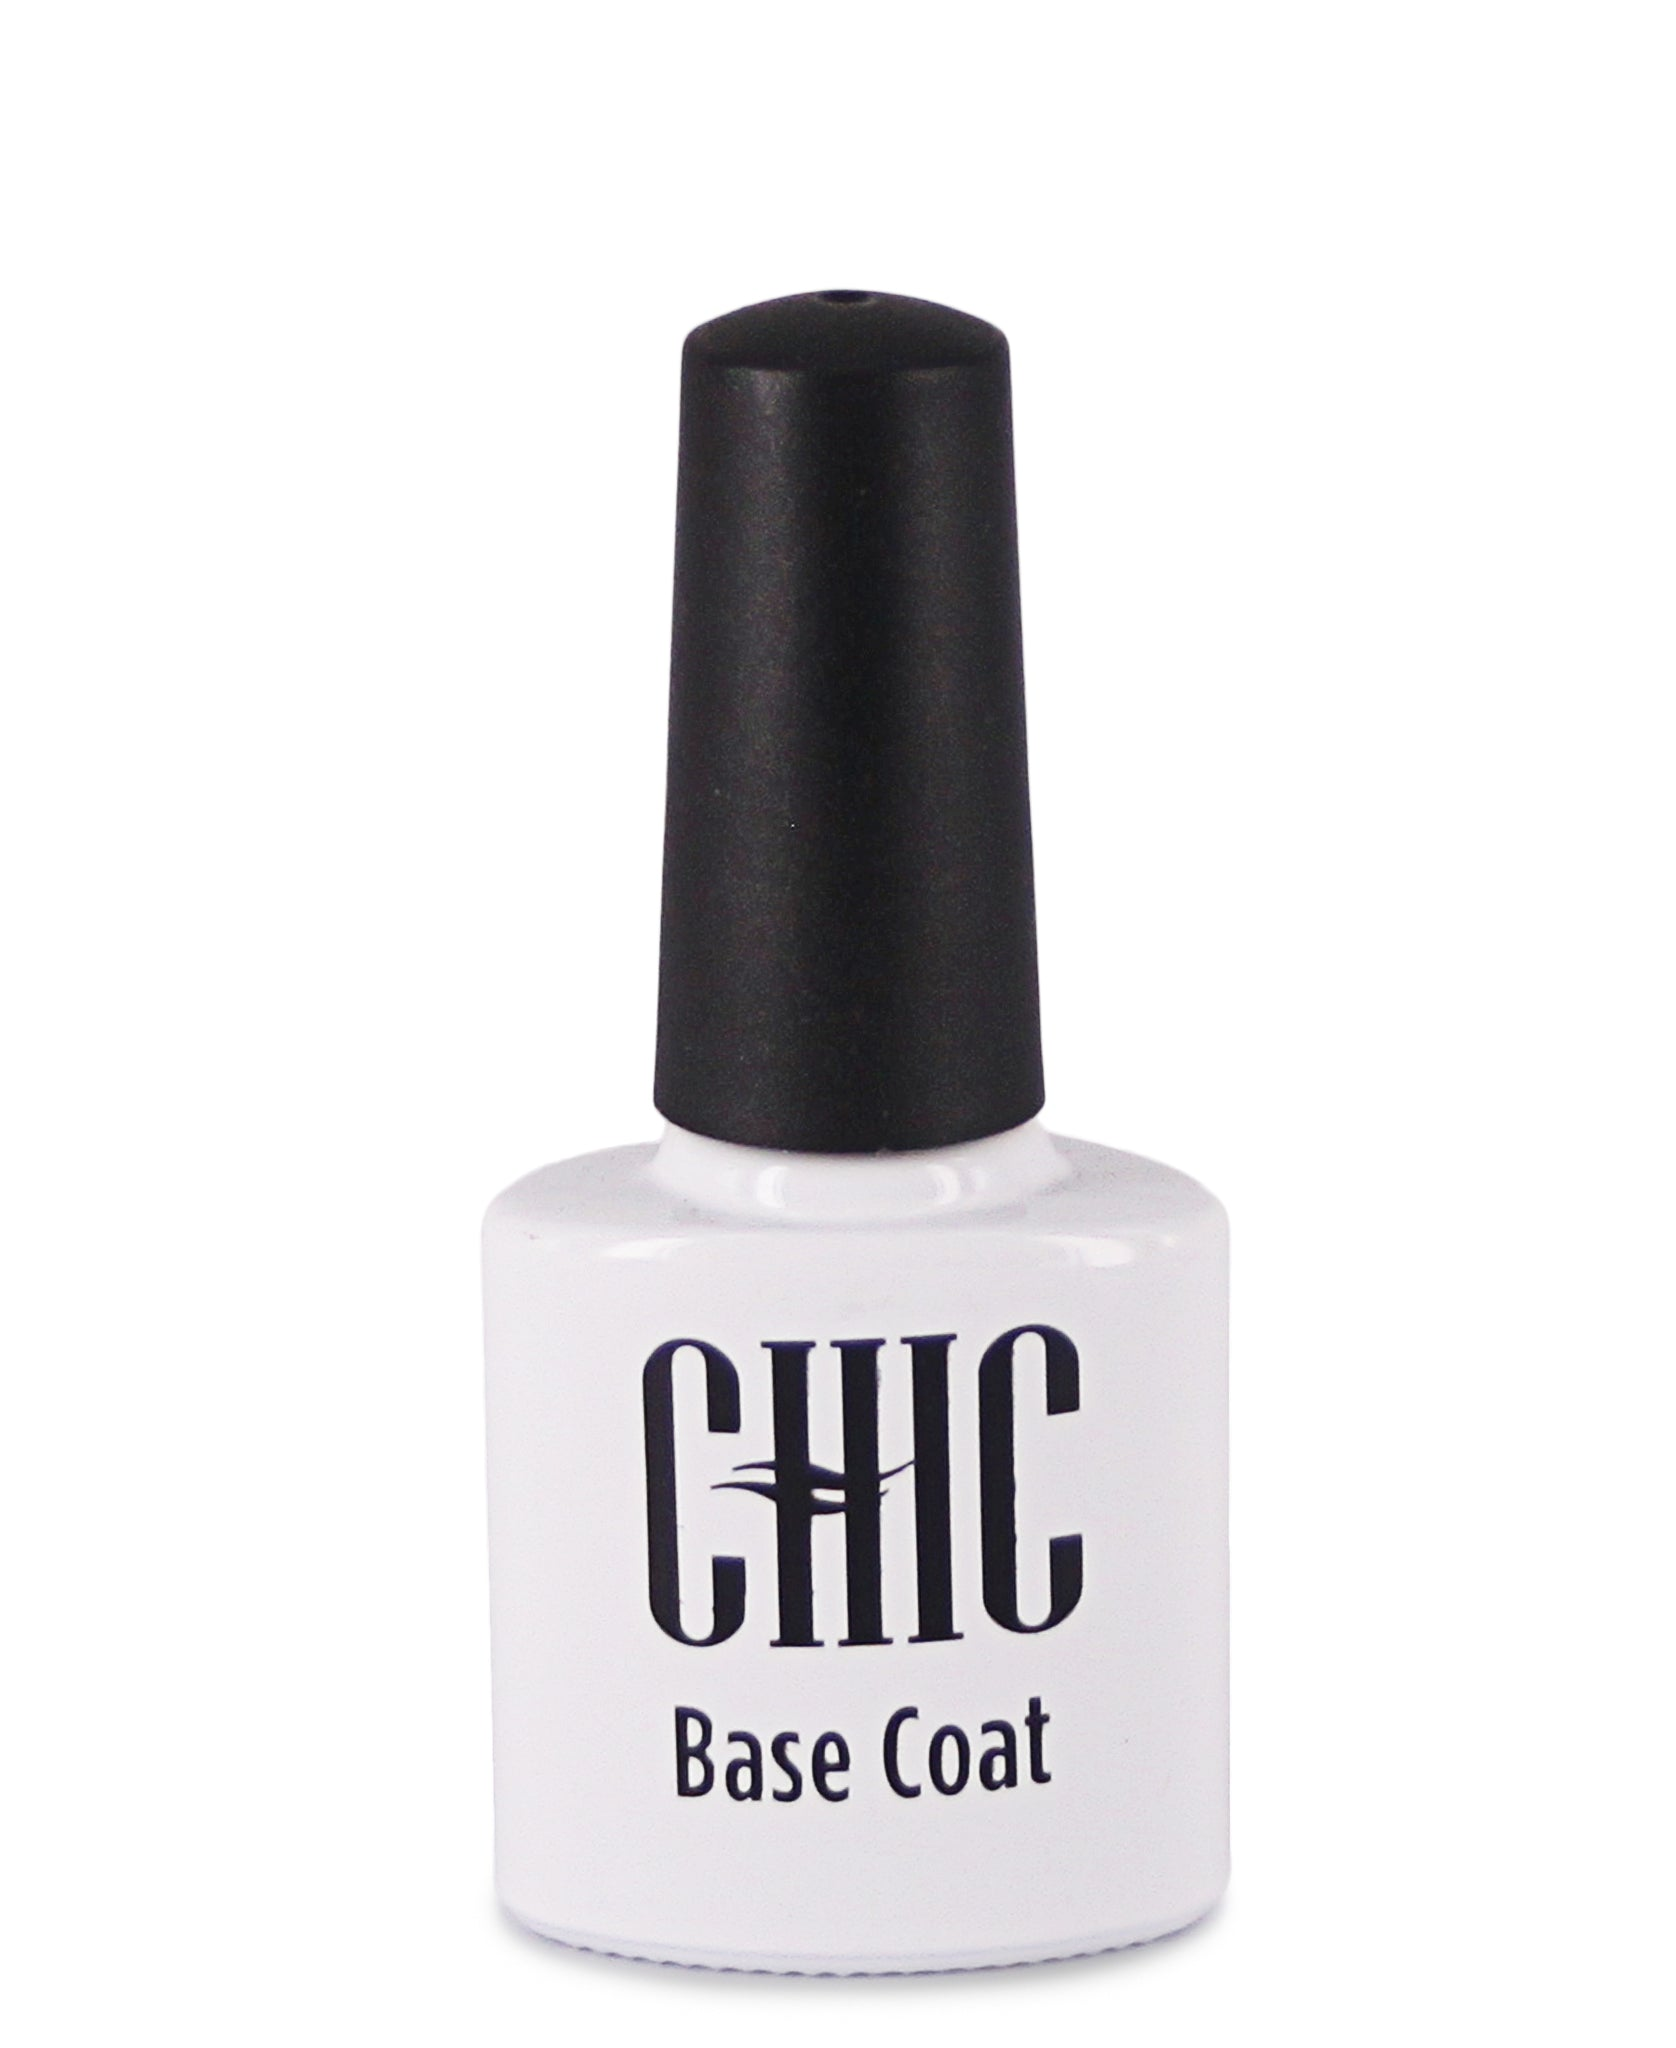 Uv Gel Base Coat Nail Polish - Clear